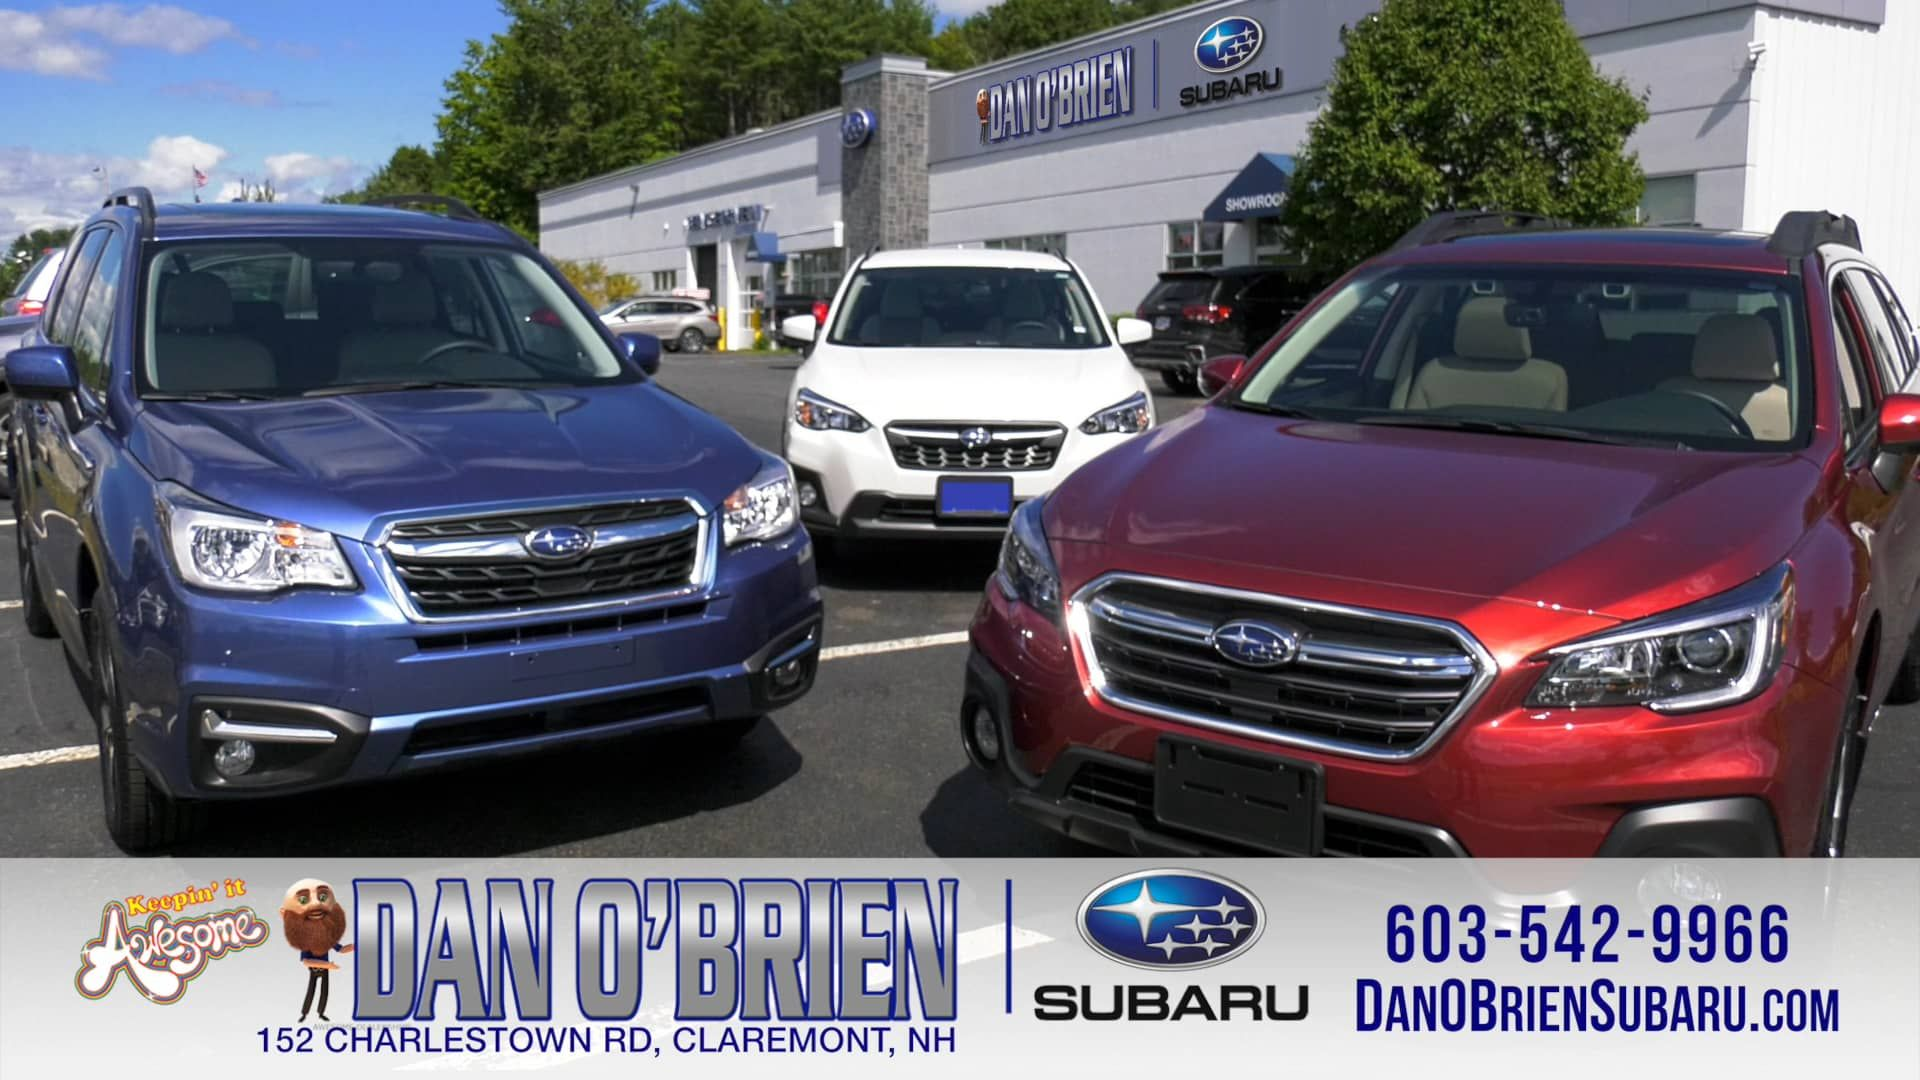 Dan O Brien Subaru 152 Charlestown Rd Claremont Nh 03743 Https Www Danobriensubaru Com Subaru Car Videos Claremont